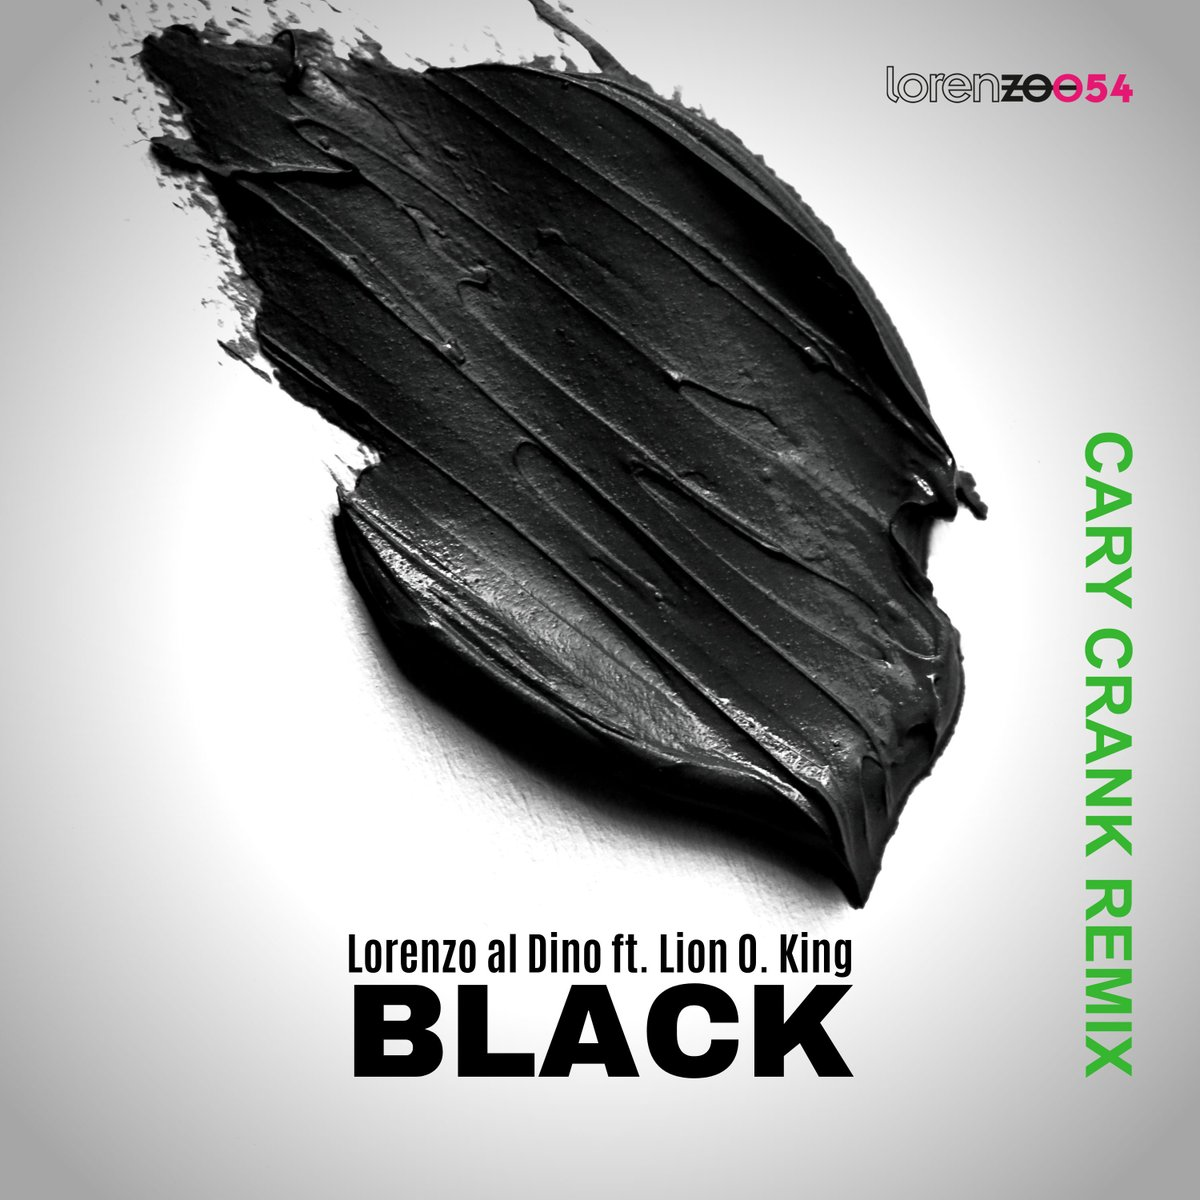 Next release on 3 July 2020. My remix of Black by @lorenzoaldino #TechHouse #techhousedj<br>http://pic.twitter.com/cKEpZTHMiB